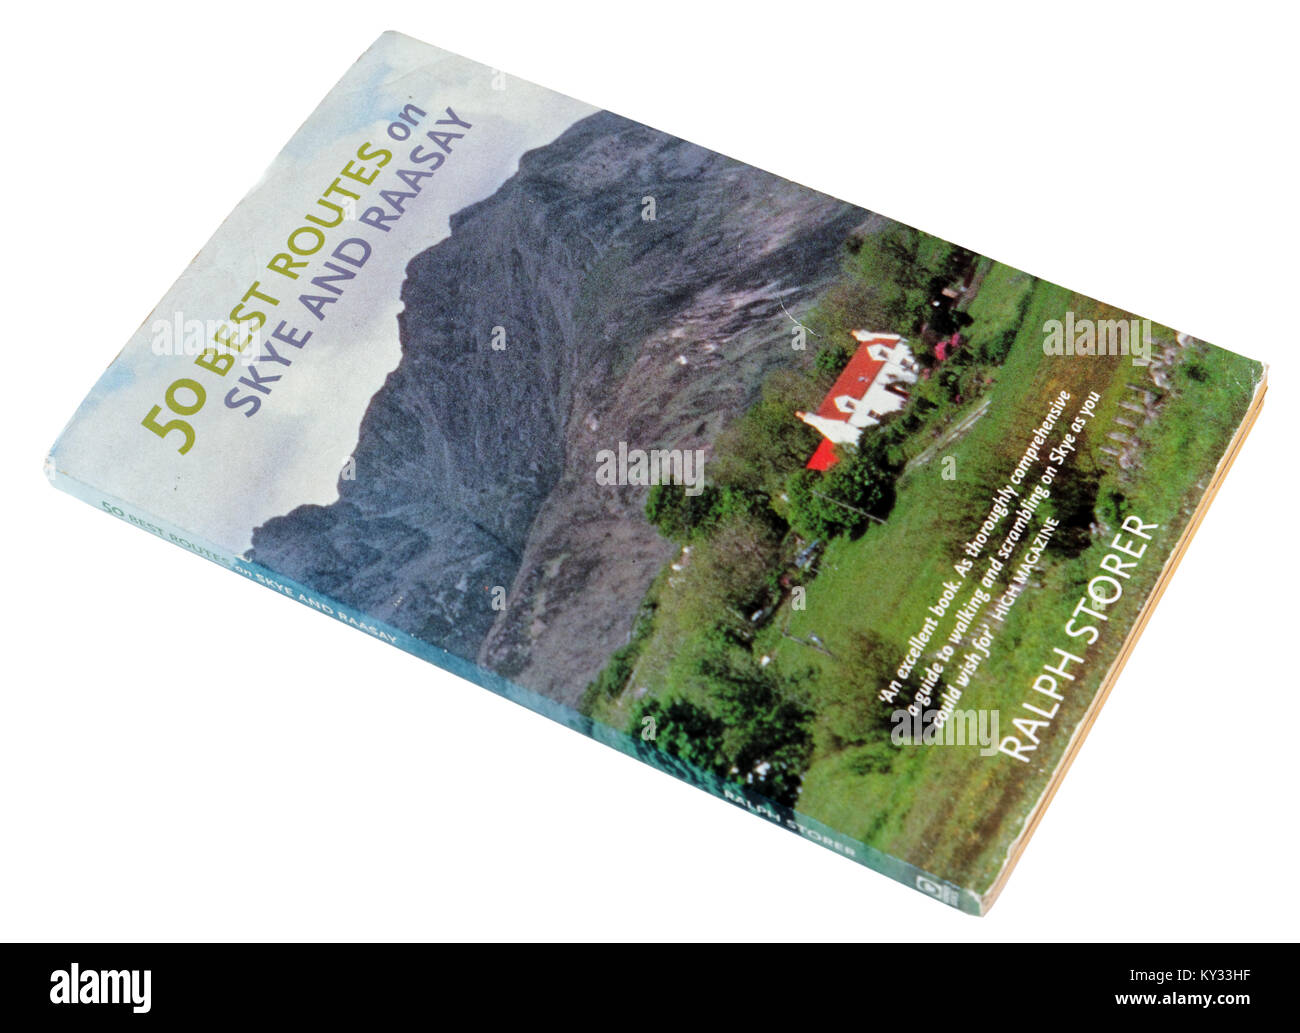 Guidebook to hillwalking on Skye and Raasay in the Scottish Highlands - Stock Image